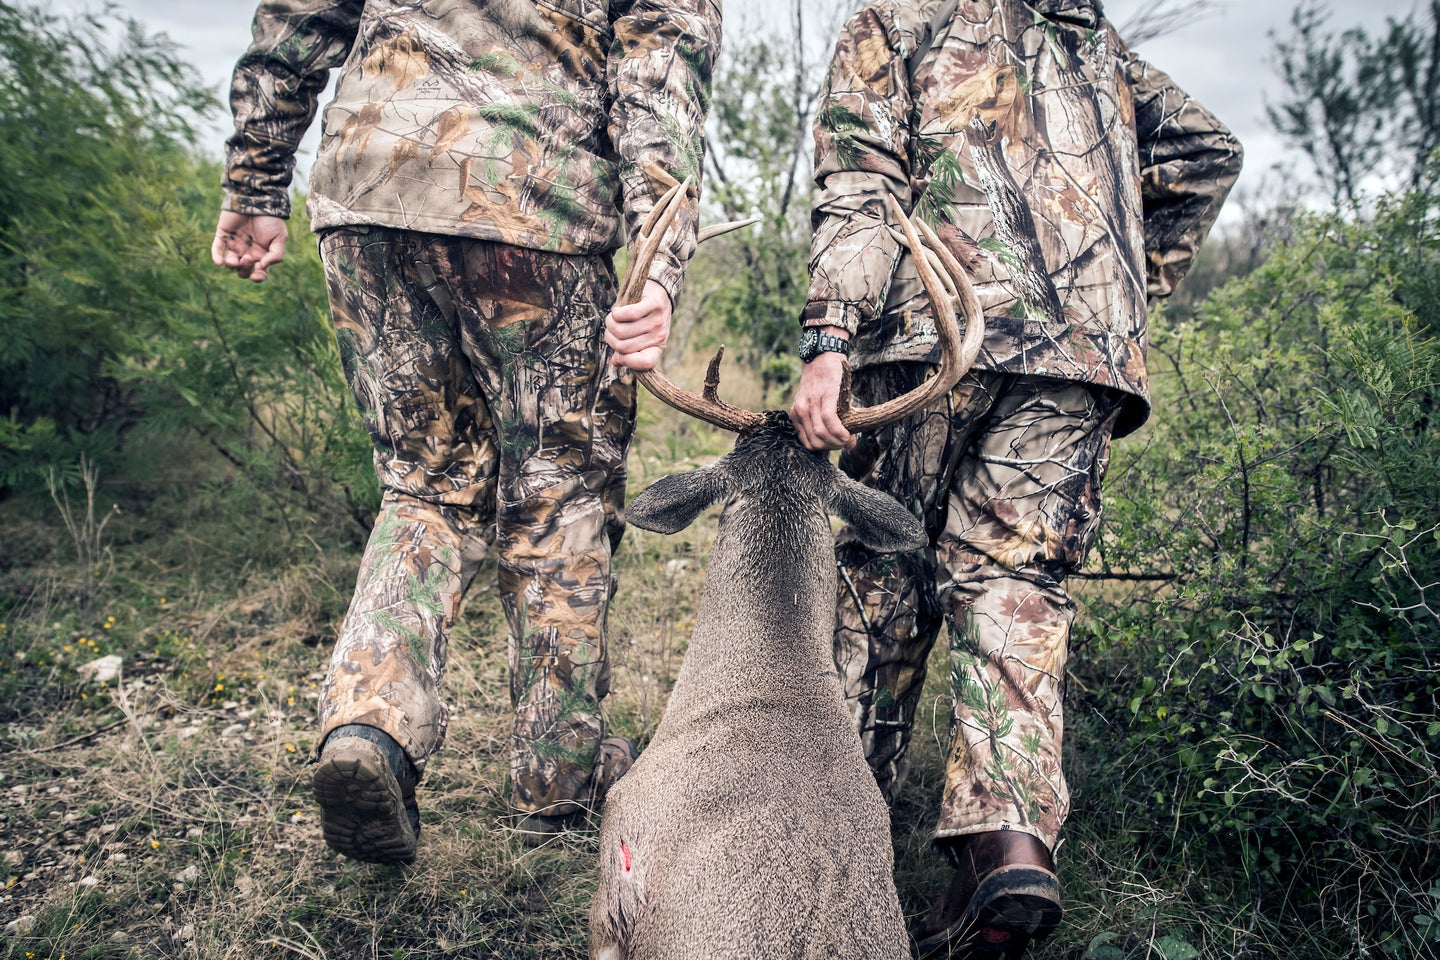 21 Ways to Recruit New People into Hunting and Fishing